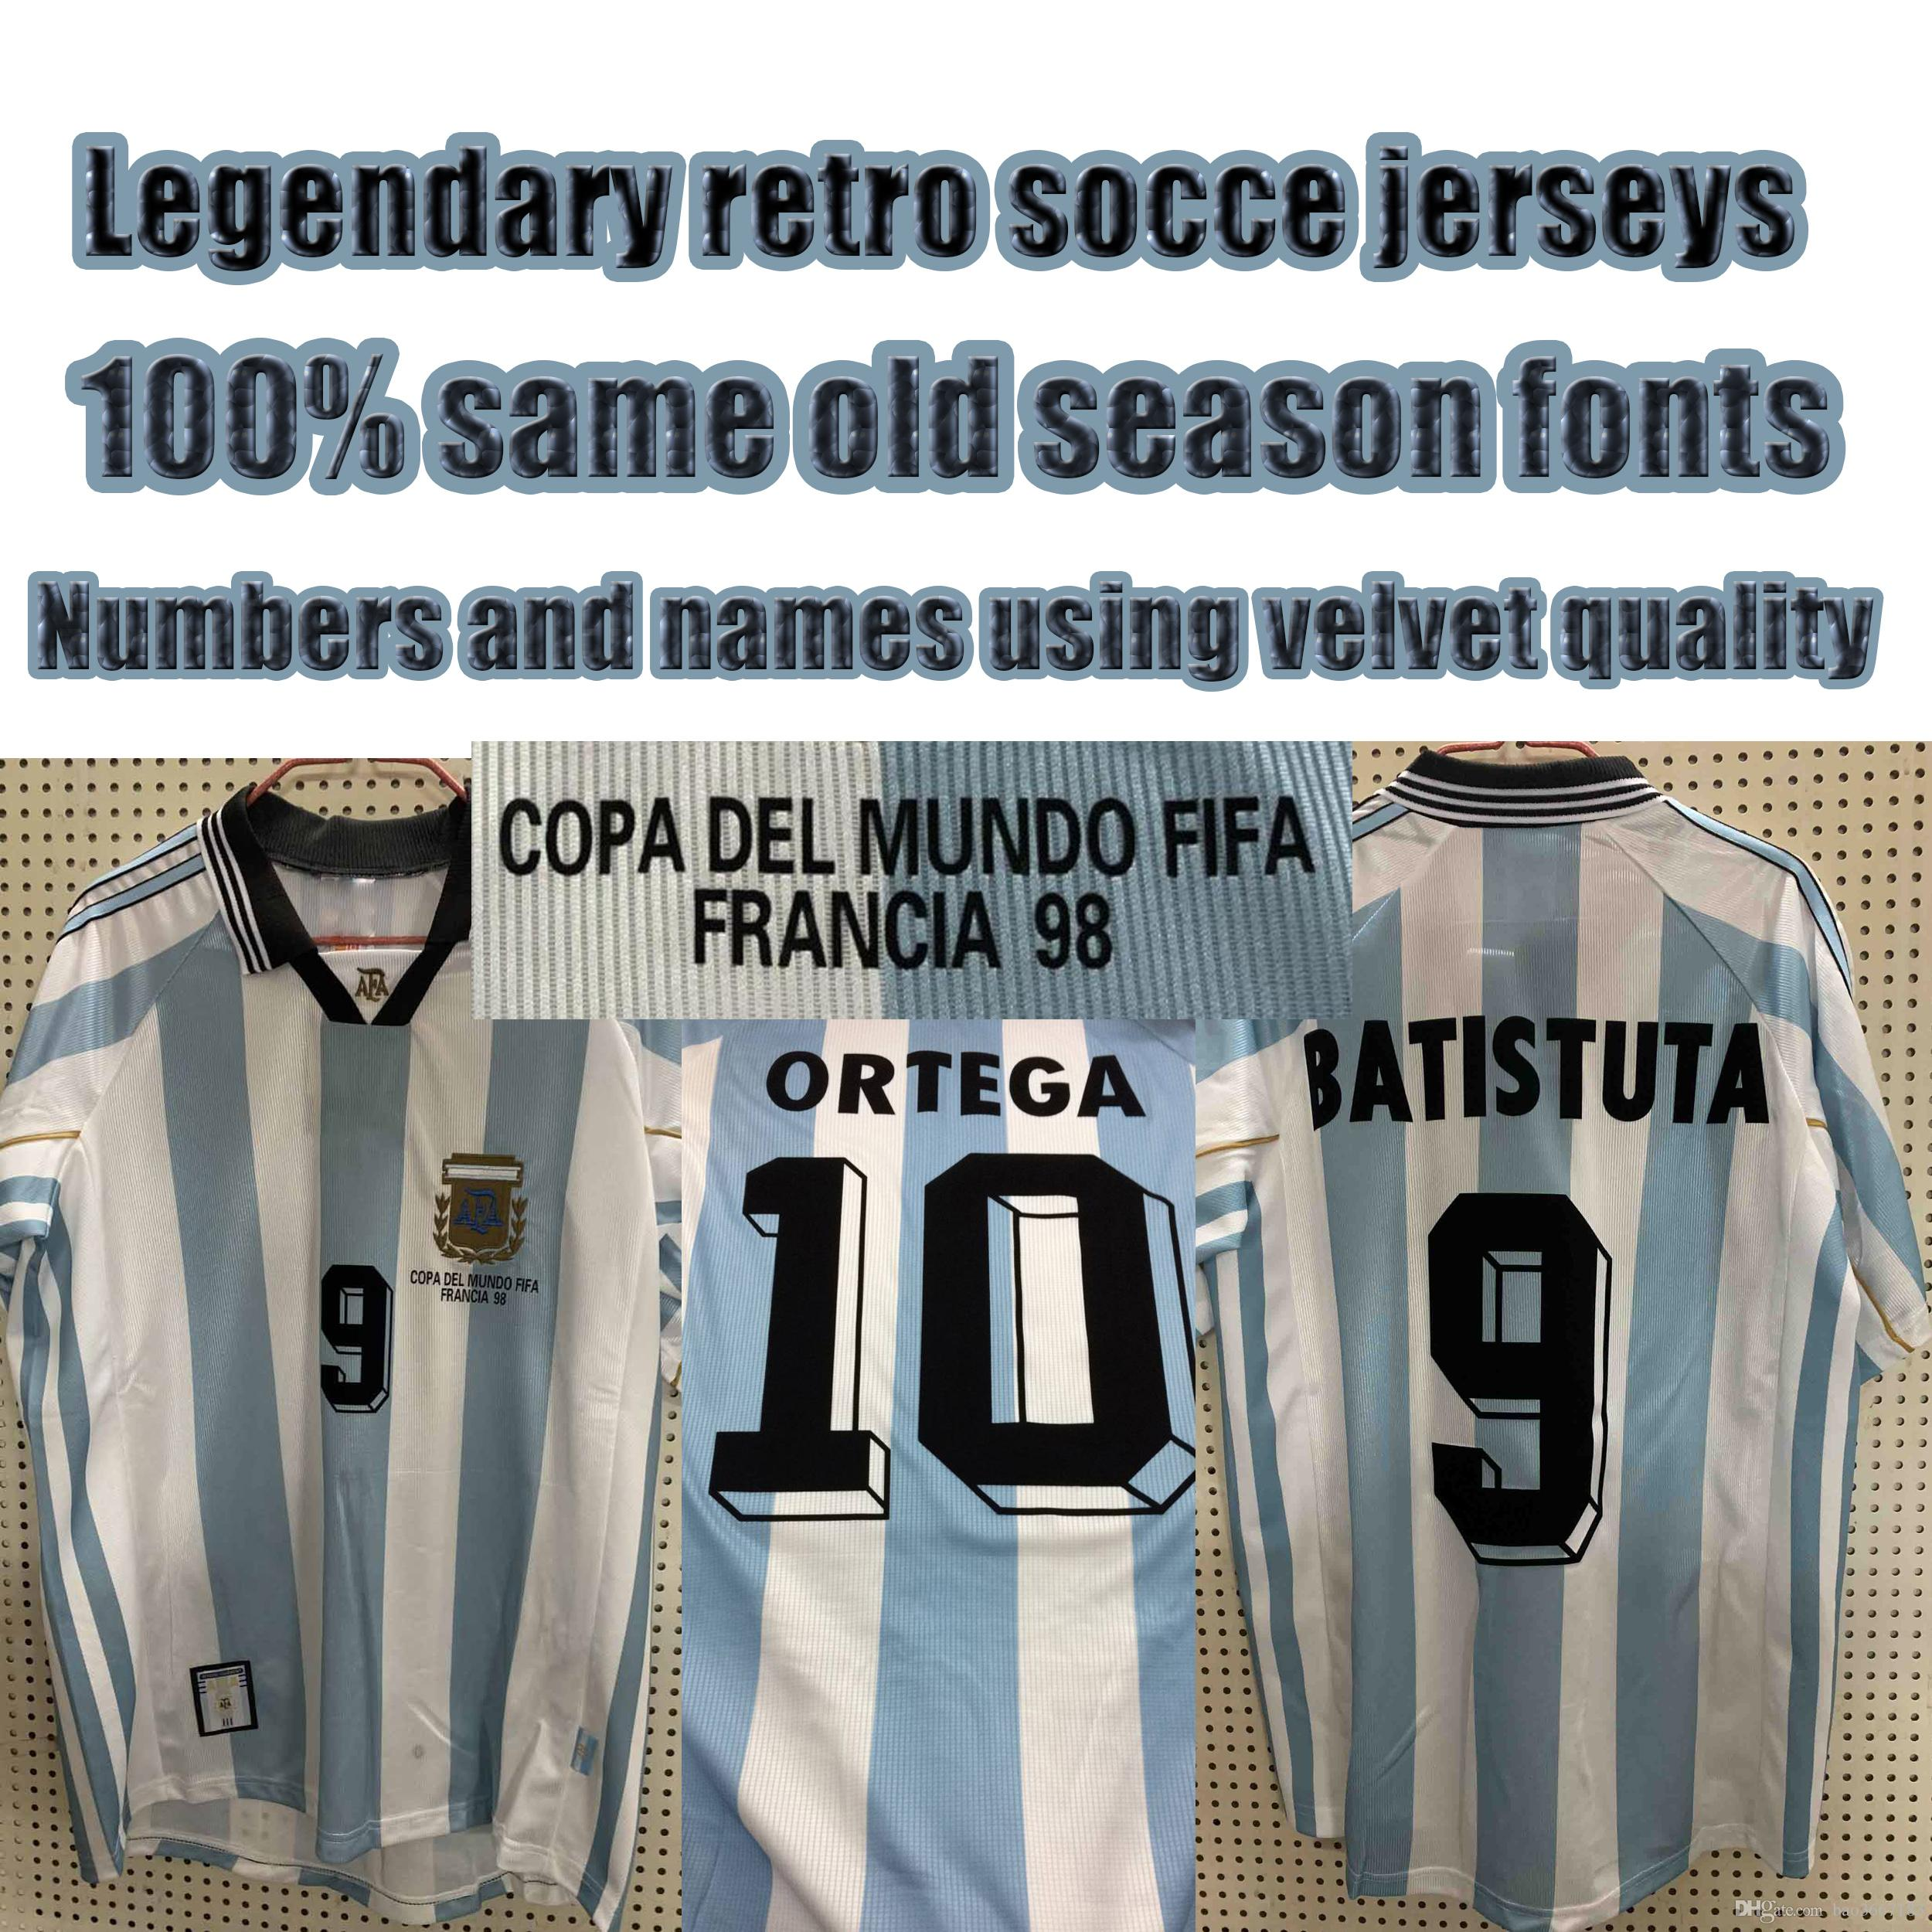 1998 World cup Retro Argentina Home Soccer jerseys BATISTUTA ORTEGA VERON MESSI Maradona legendary retro Argentina home Football shirts